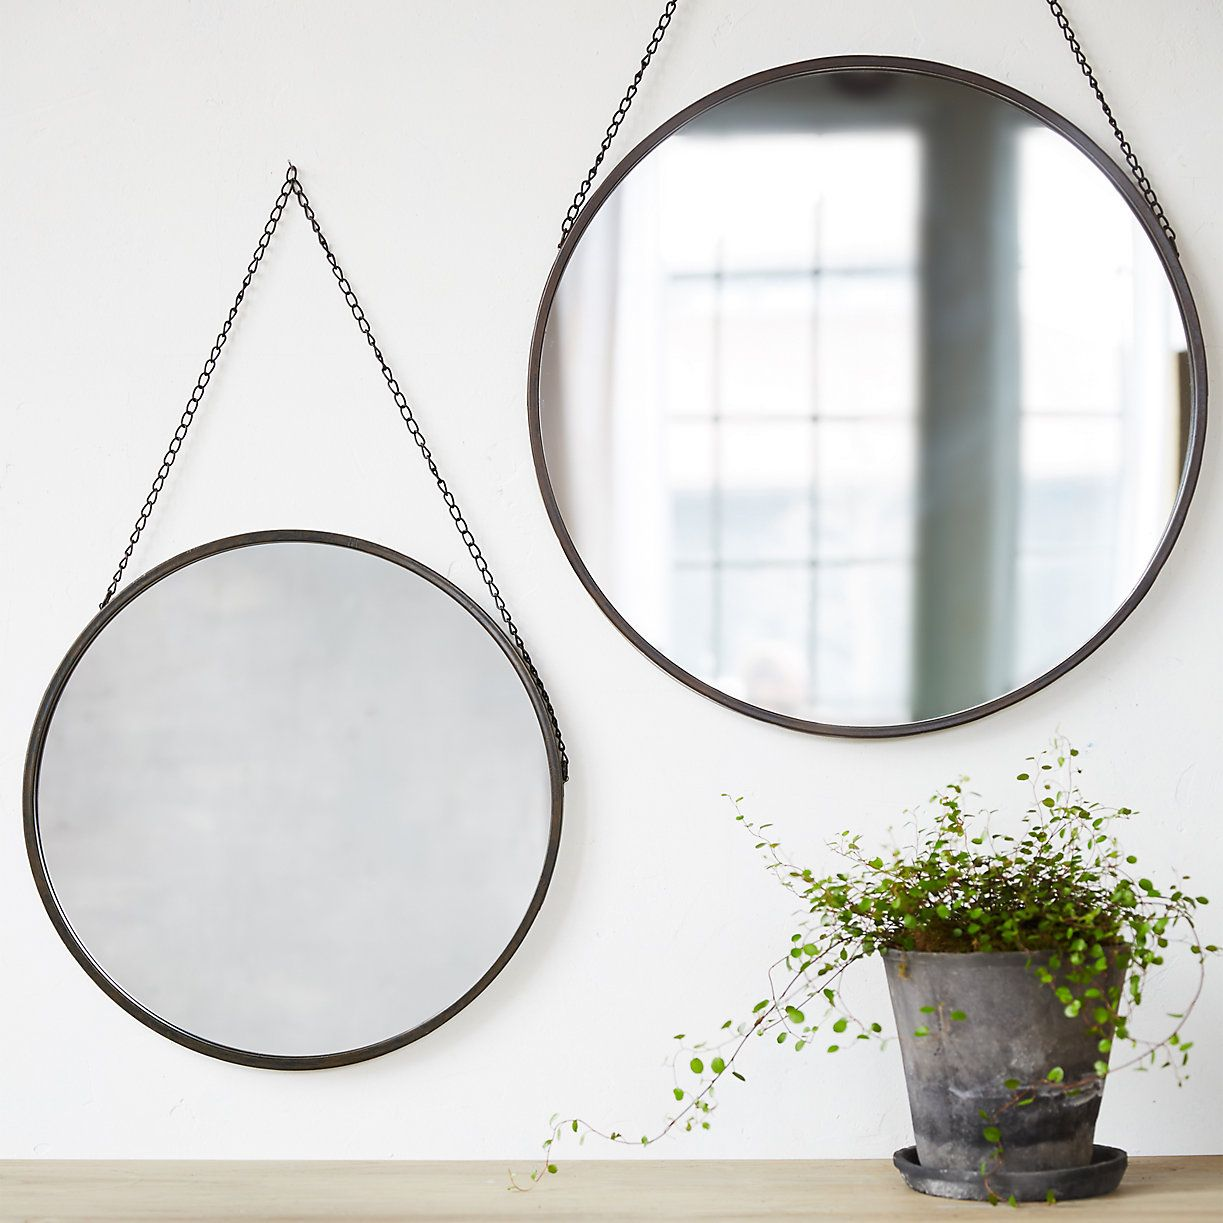 This Simple Hanging Circle Mirror Is An Effortless Way To Add A Stylish Touch To Any Room Available In Small Round Hanging Mirror Hanging Mirror Circle Mirror